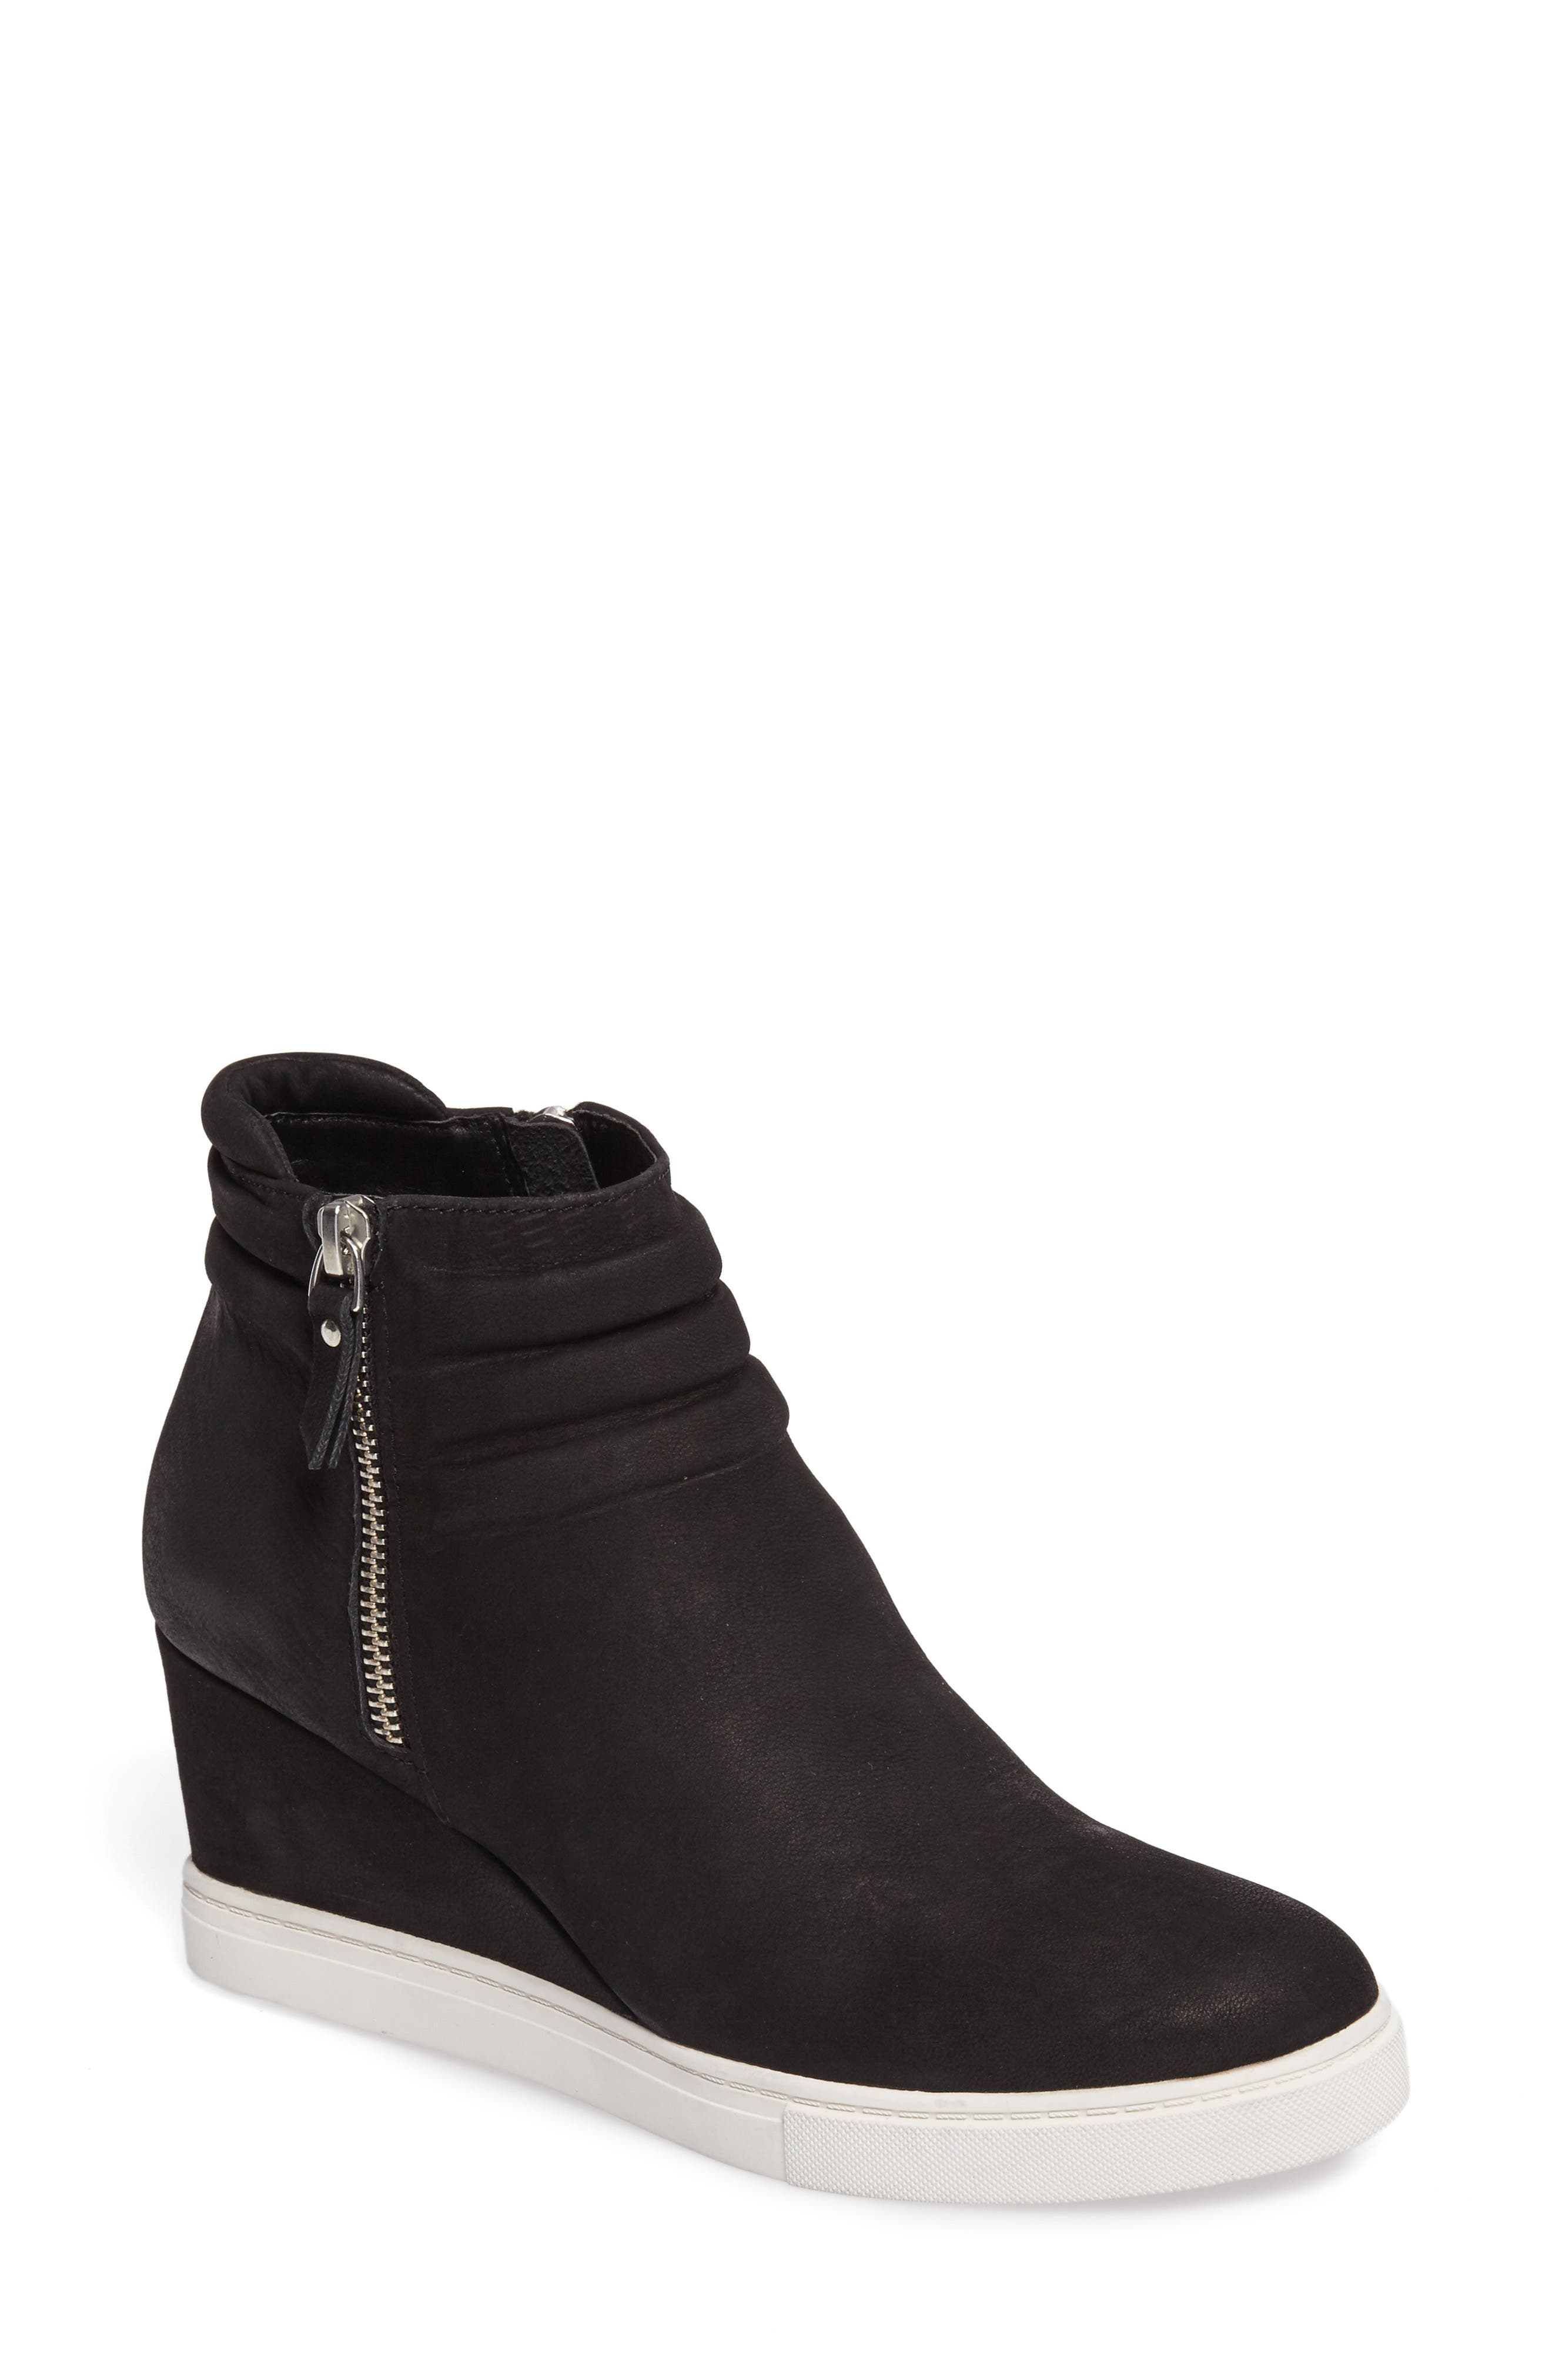 Frieda Wedge Bootie, Main, color, BLACK LEATHER